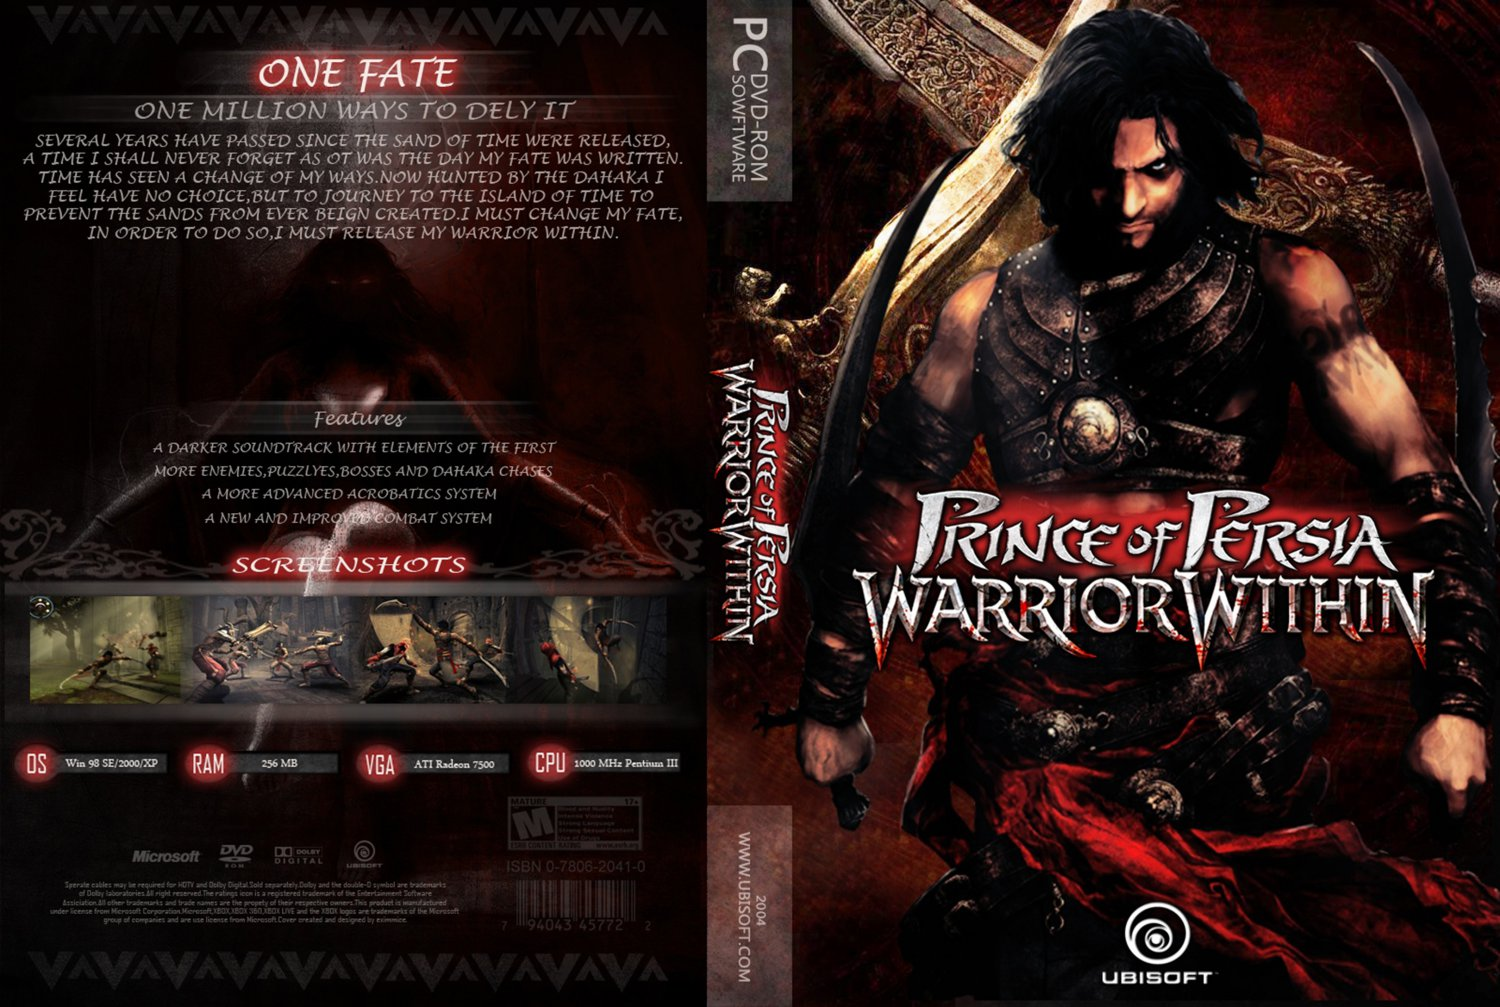 TÉLÉCHARGER PRINCE OF PERSIA WARRIOR WITHIN PC GRATUIT COMPLET STARTIMES